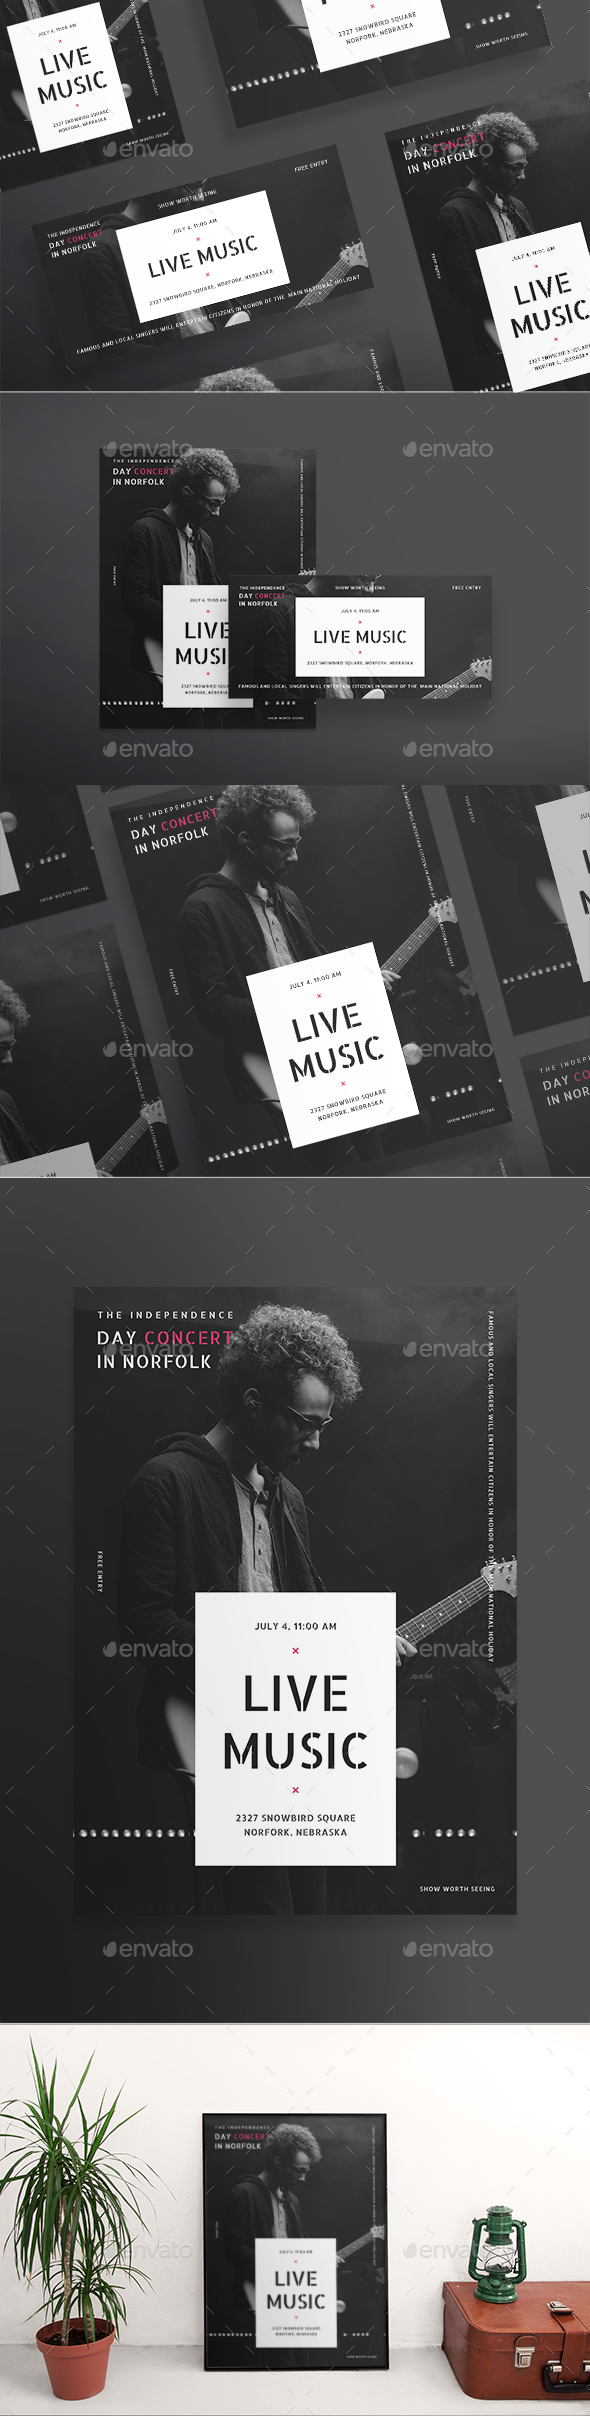 Live Music Flyers - Concerts Events